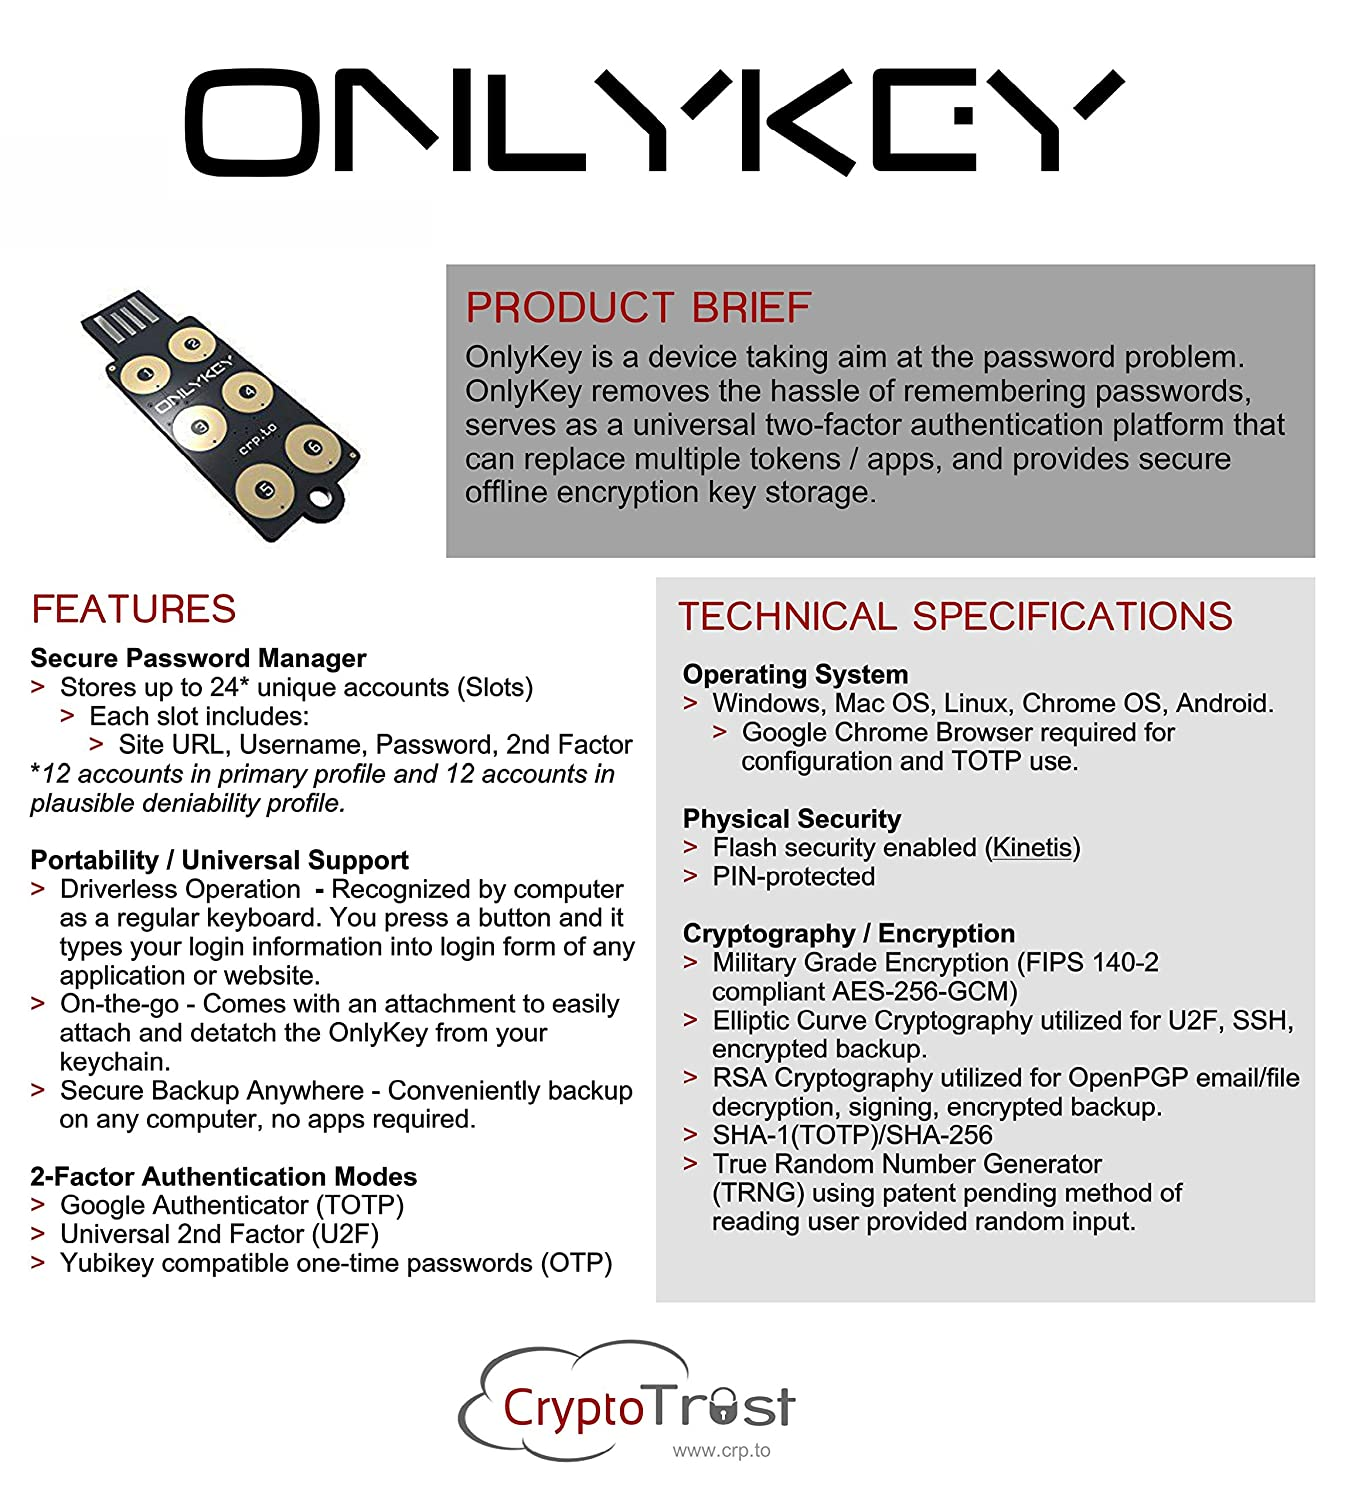 OnlyKey Color - Secure Password Manager and 2 Factor Token (U2F, Yubikey  OTP, Google Auth) Make Password Hacking Obsolete